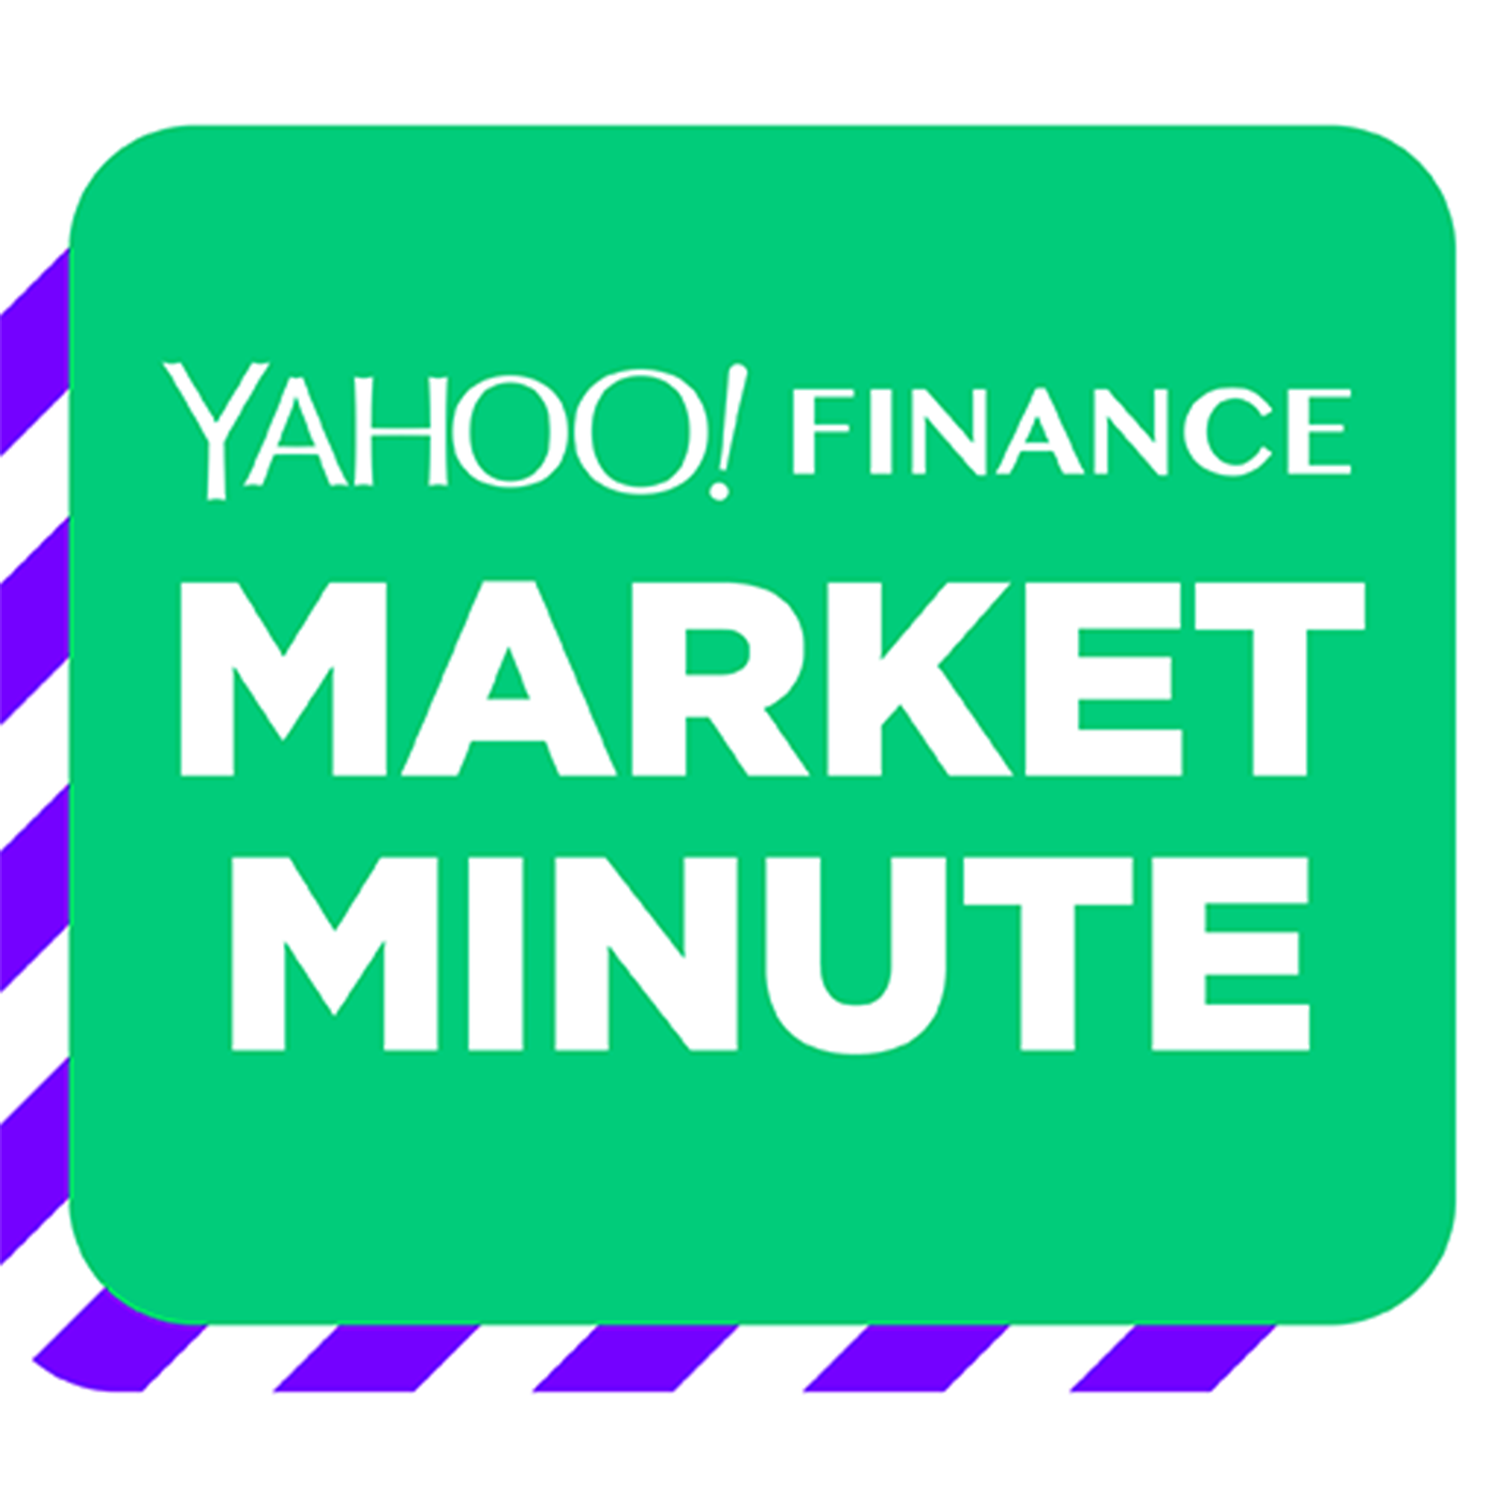 Yahoo Finance Market Minute